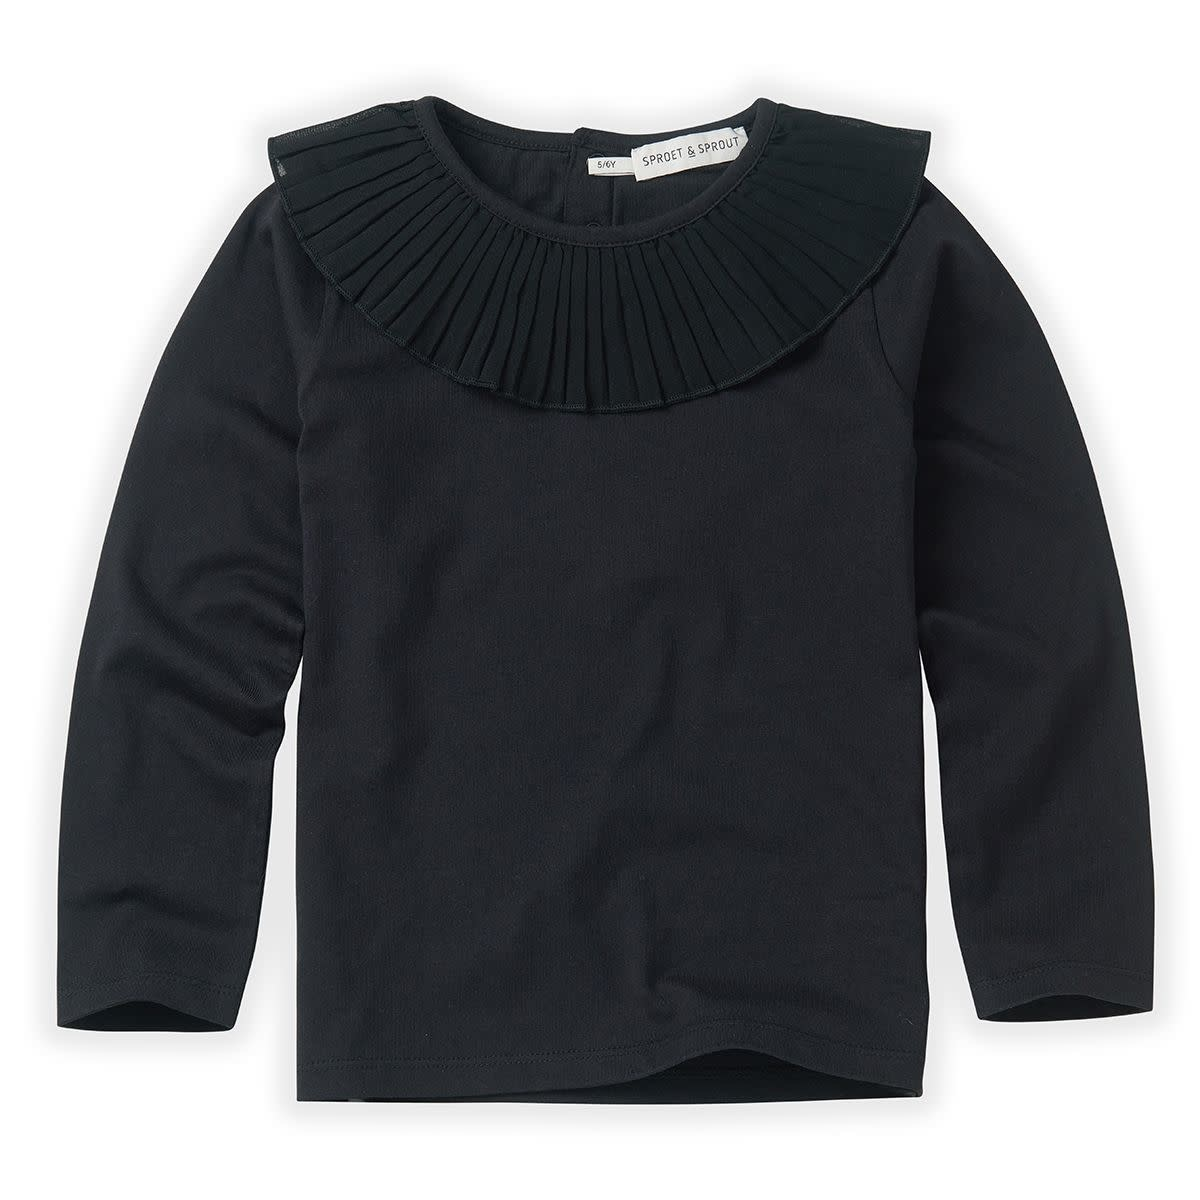 Sproet & Sprout Sproet&Sprout - T-shirt collar black